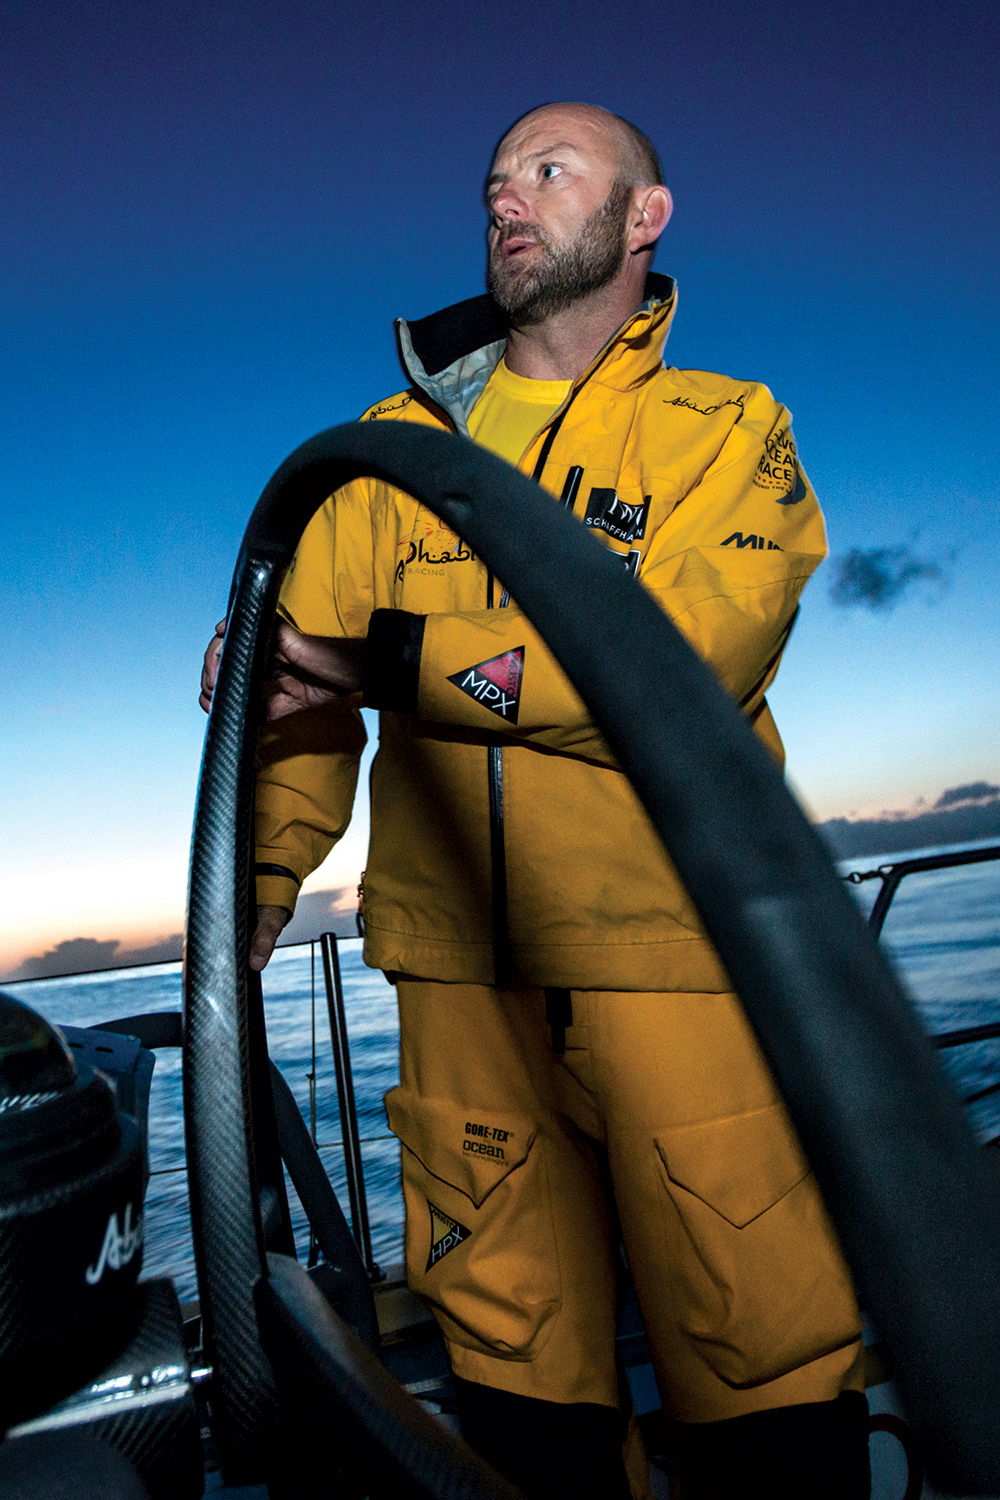 Ian Walker at the helm of Abu Dhabi's Azzam. Photo Knighton/Volvo Ocean Race.